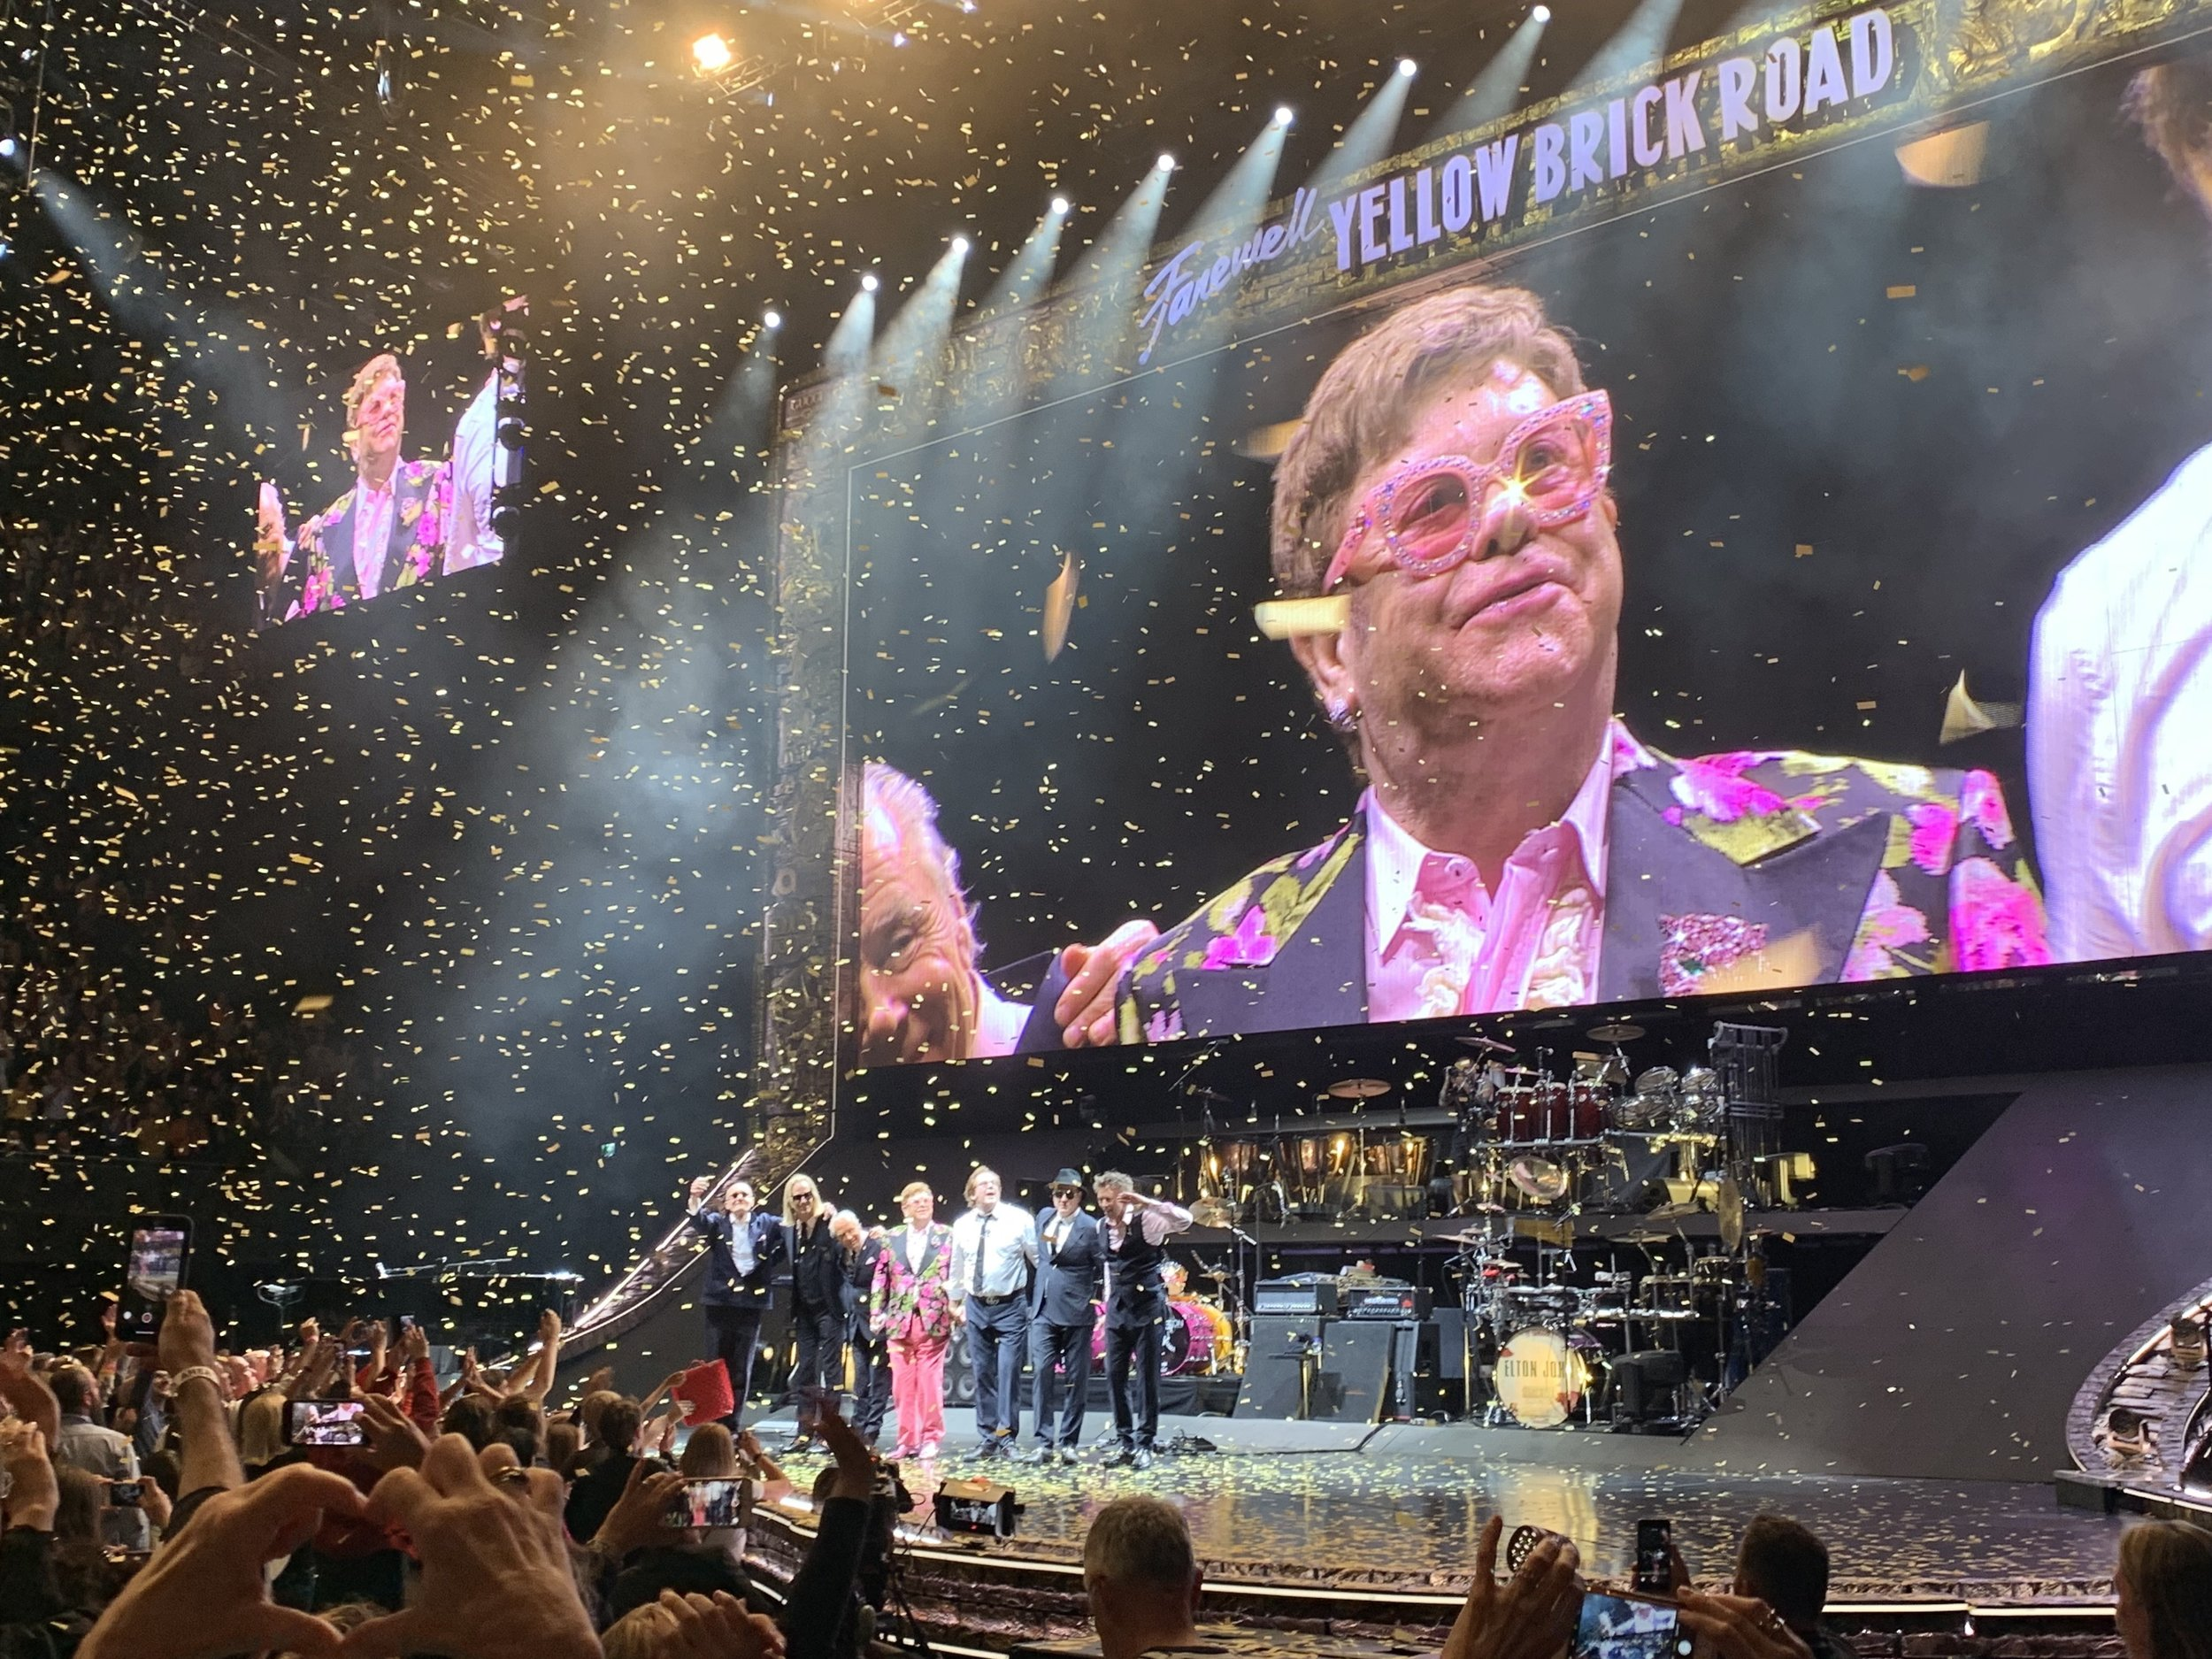 Elton John Ziggo Dome Amsterdam - Vanilla Rose Weddings Monthly Round Up